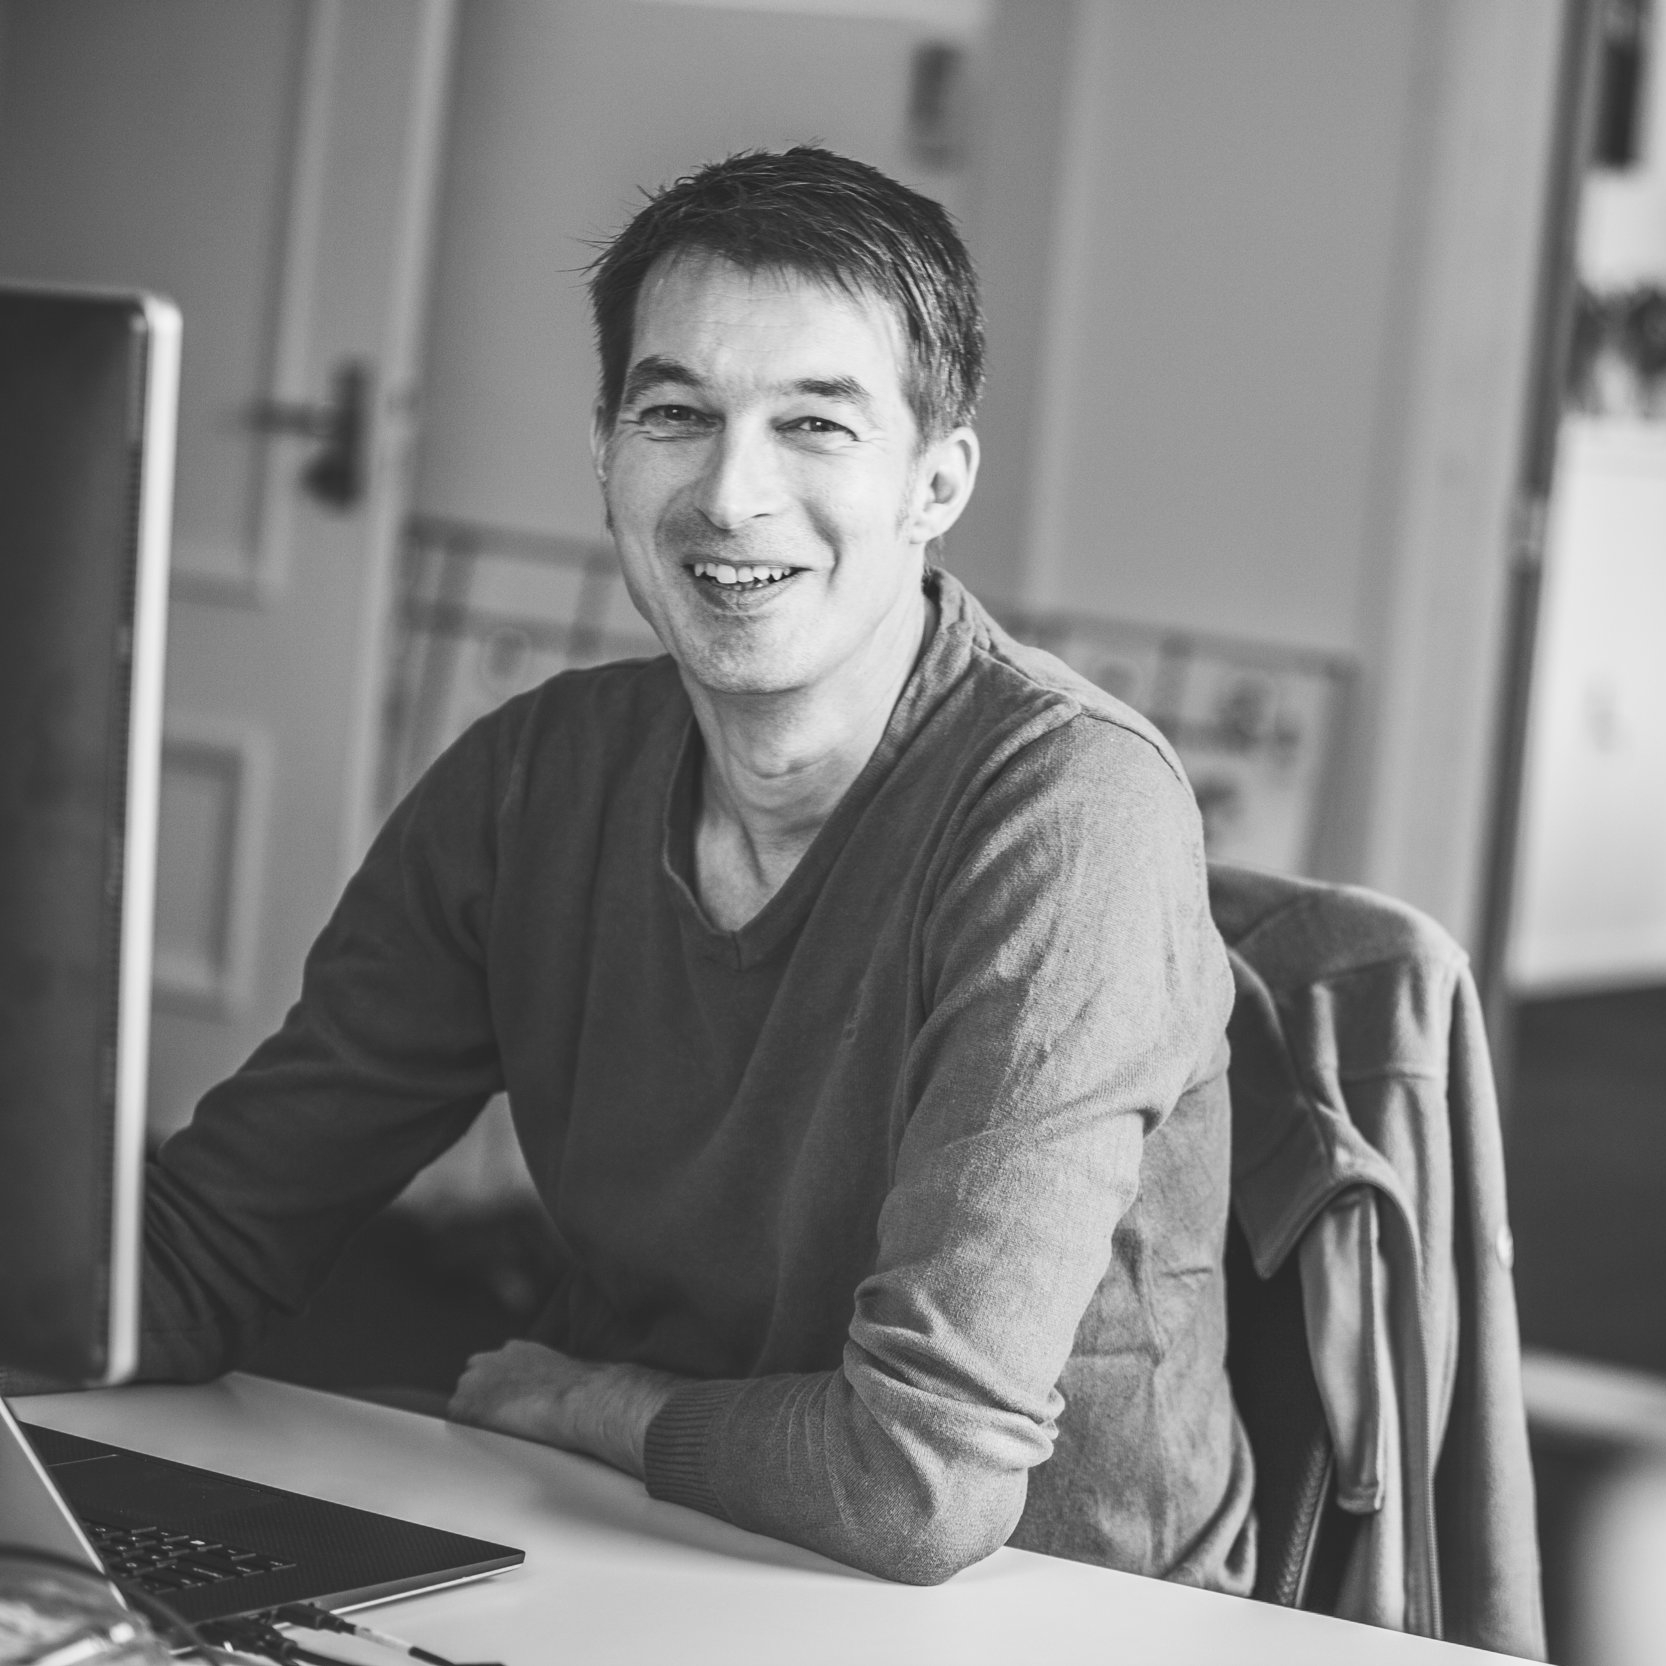 Vincent Schut, MSc - Software Engineer